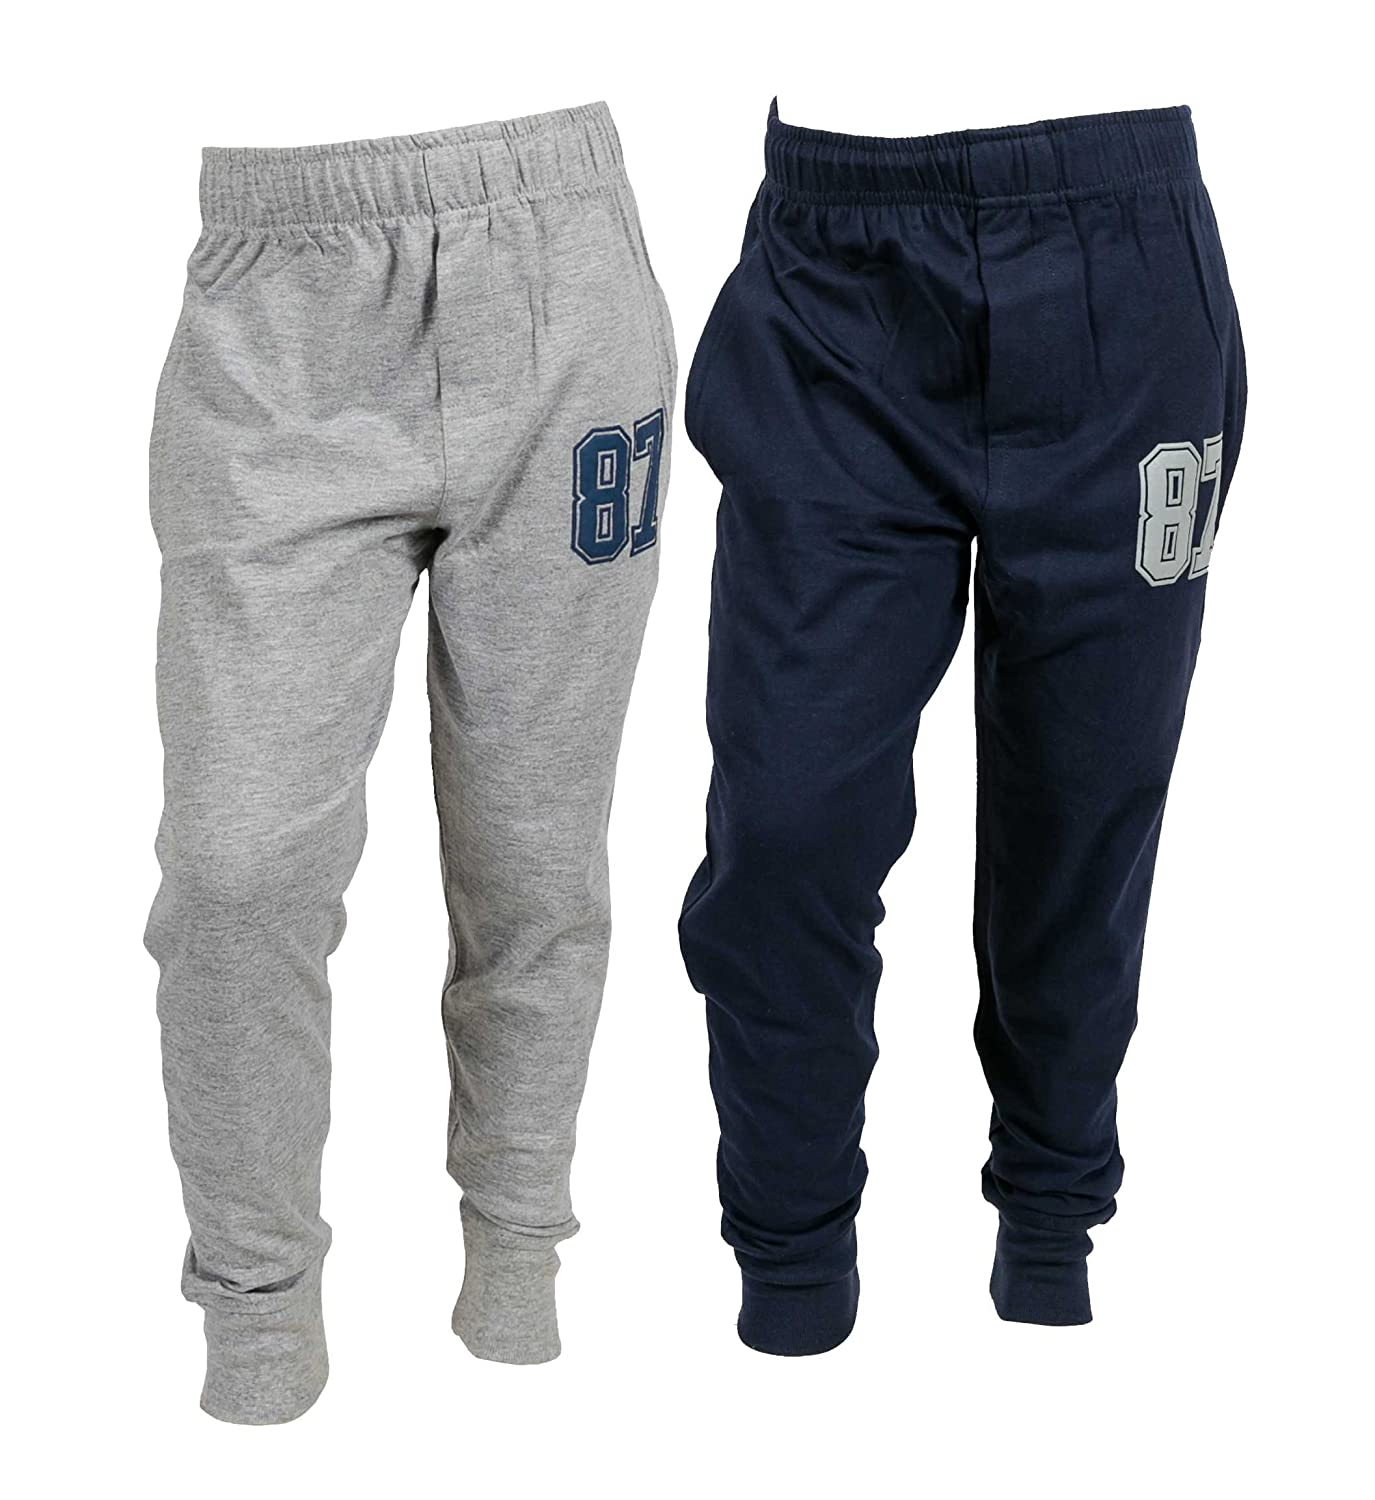 chopper club Pack of 2 Track Pant for Boys 7-15 Years Pack of 2 Smart Joggers Zakie Enterprises